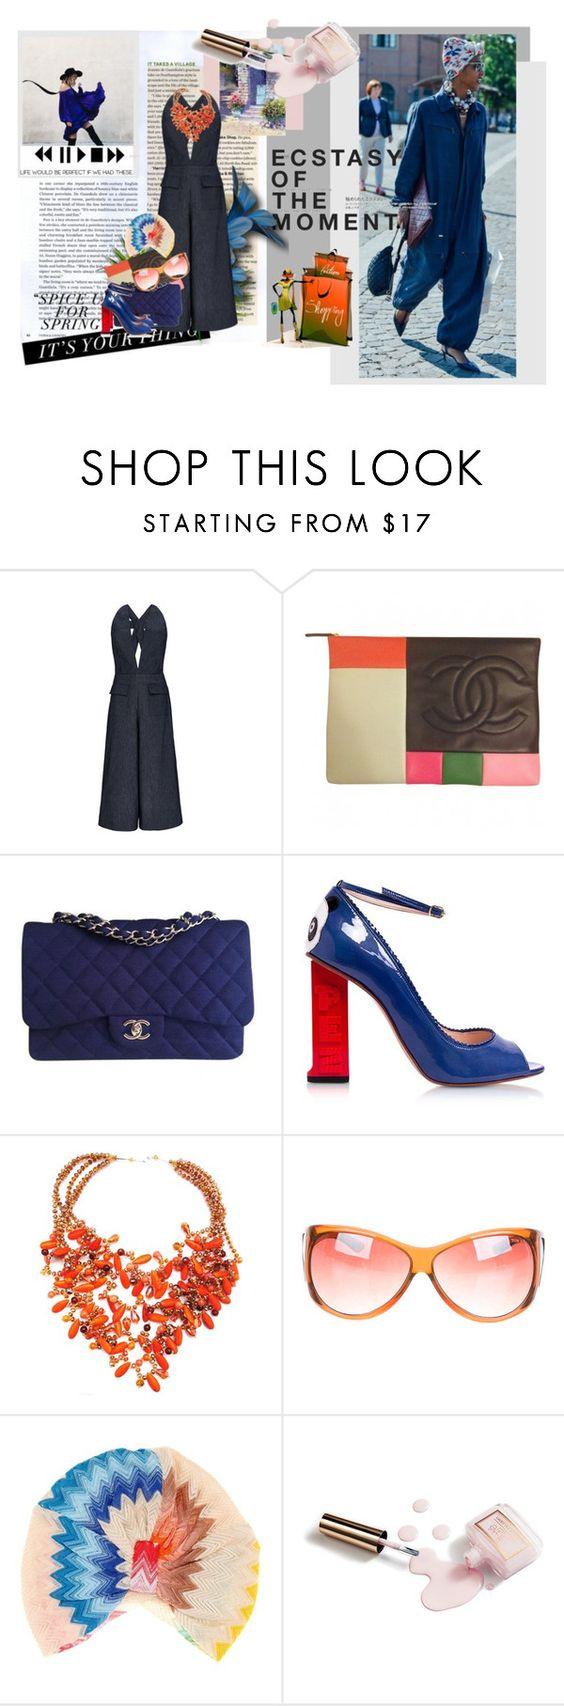 """""""Ecstasy of the moment"""" by wodecai ❤ liked on Polyvore featuring Anja, Cushnie Et Ochs, Chanel, Camilla Elphick, Tom Ford, Missoni Mare, Ciaté and modern"""